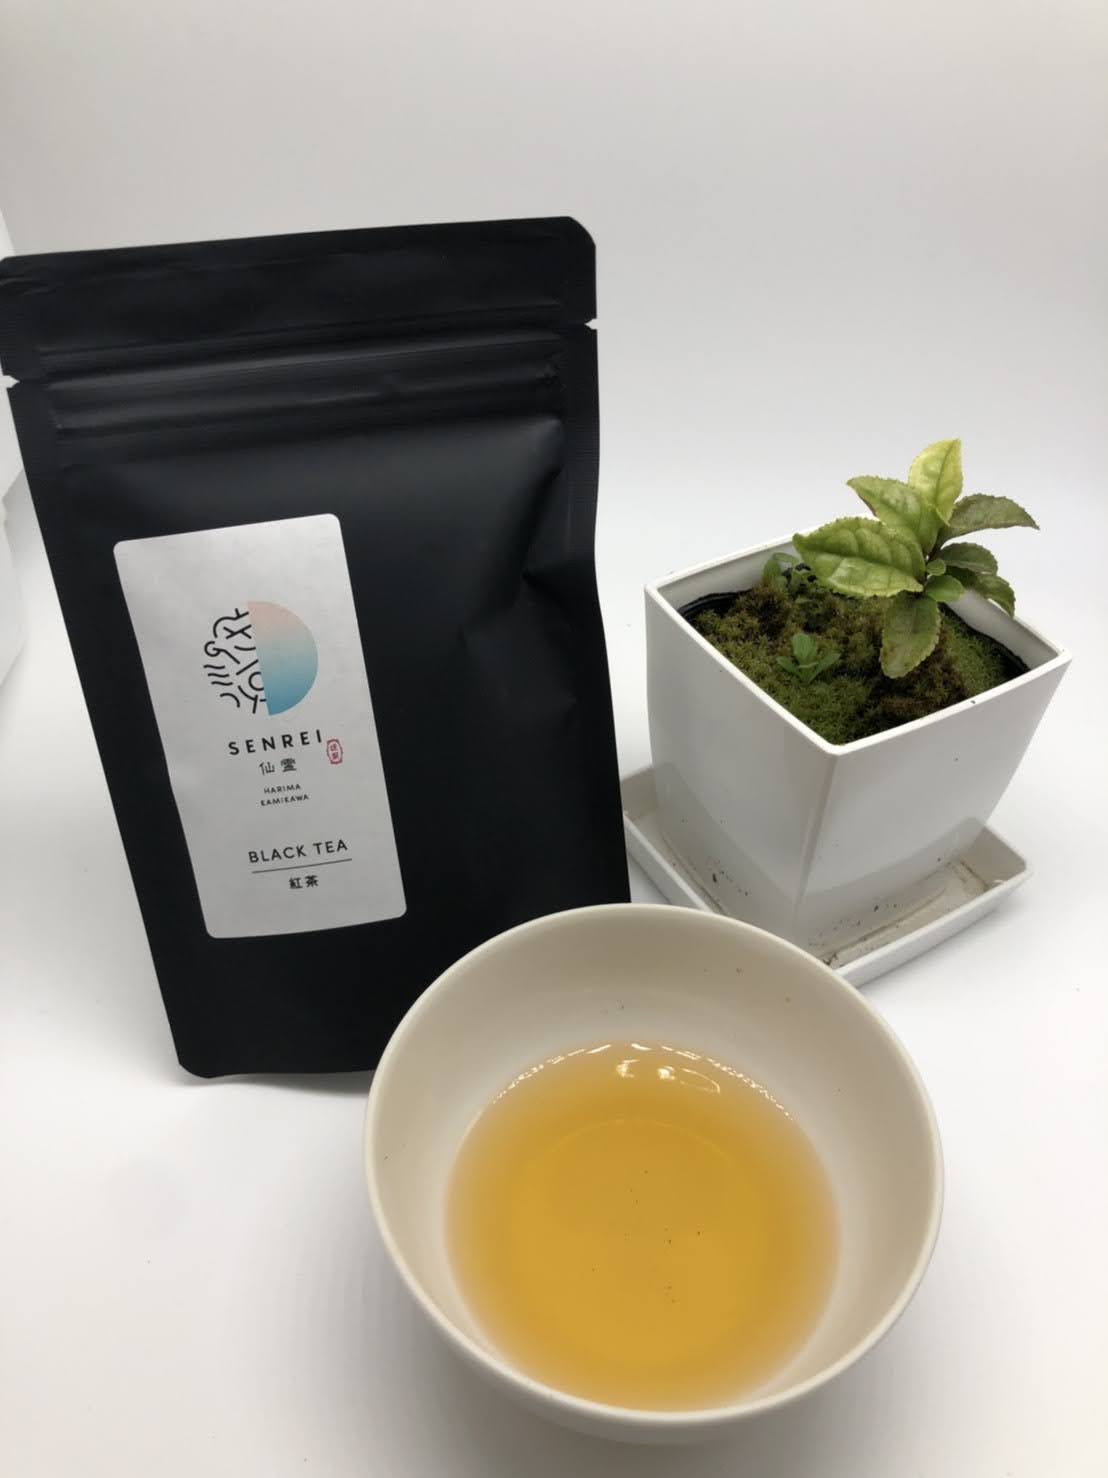 Senreicha Japanese black tea 30g